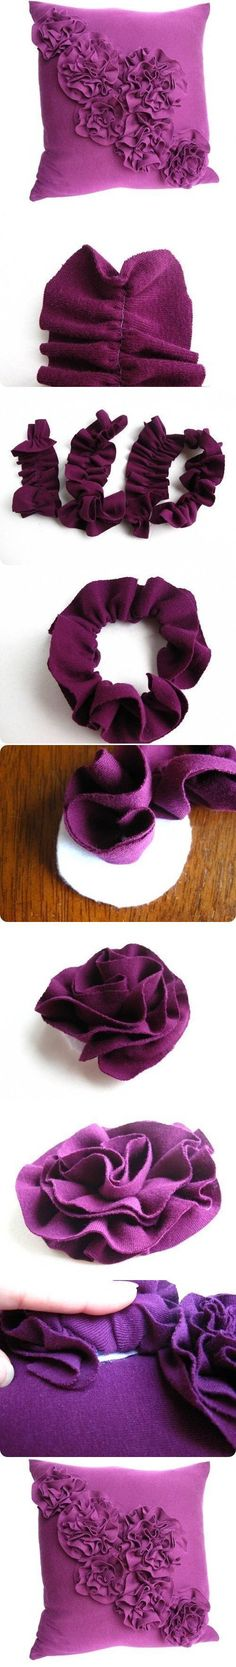 DIY Flower Pillow Decoration blue diy furniture floor easy crafts diy ideas diy crafts do it yourself diy home decor easy diy home crafts diy tips diy images easy diy craft ideas diy tutorial craft pillow crafts decorations Fabric Crafts, Sewing Crafts, Sewing Projects, Craft Projects, Diy Crafts, Blue Crafts, Felt Flowers, Diy Flowers, Fabric Flowers